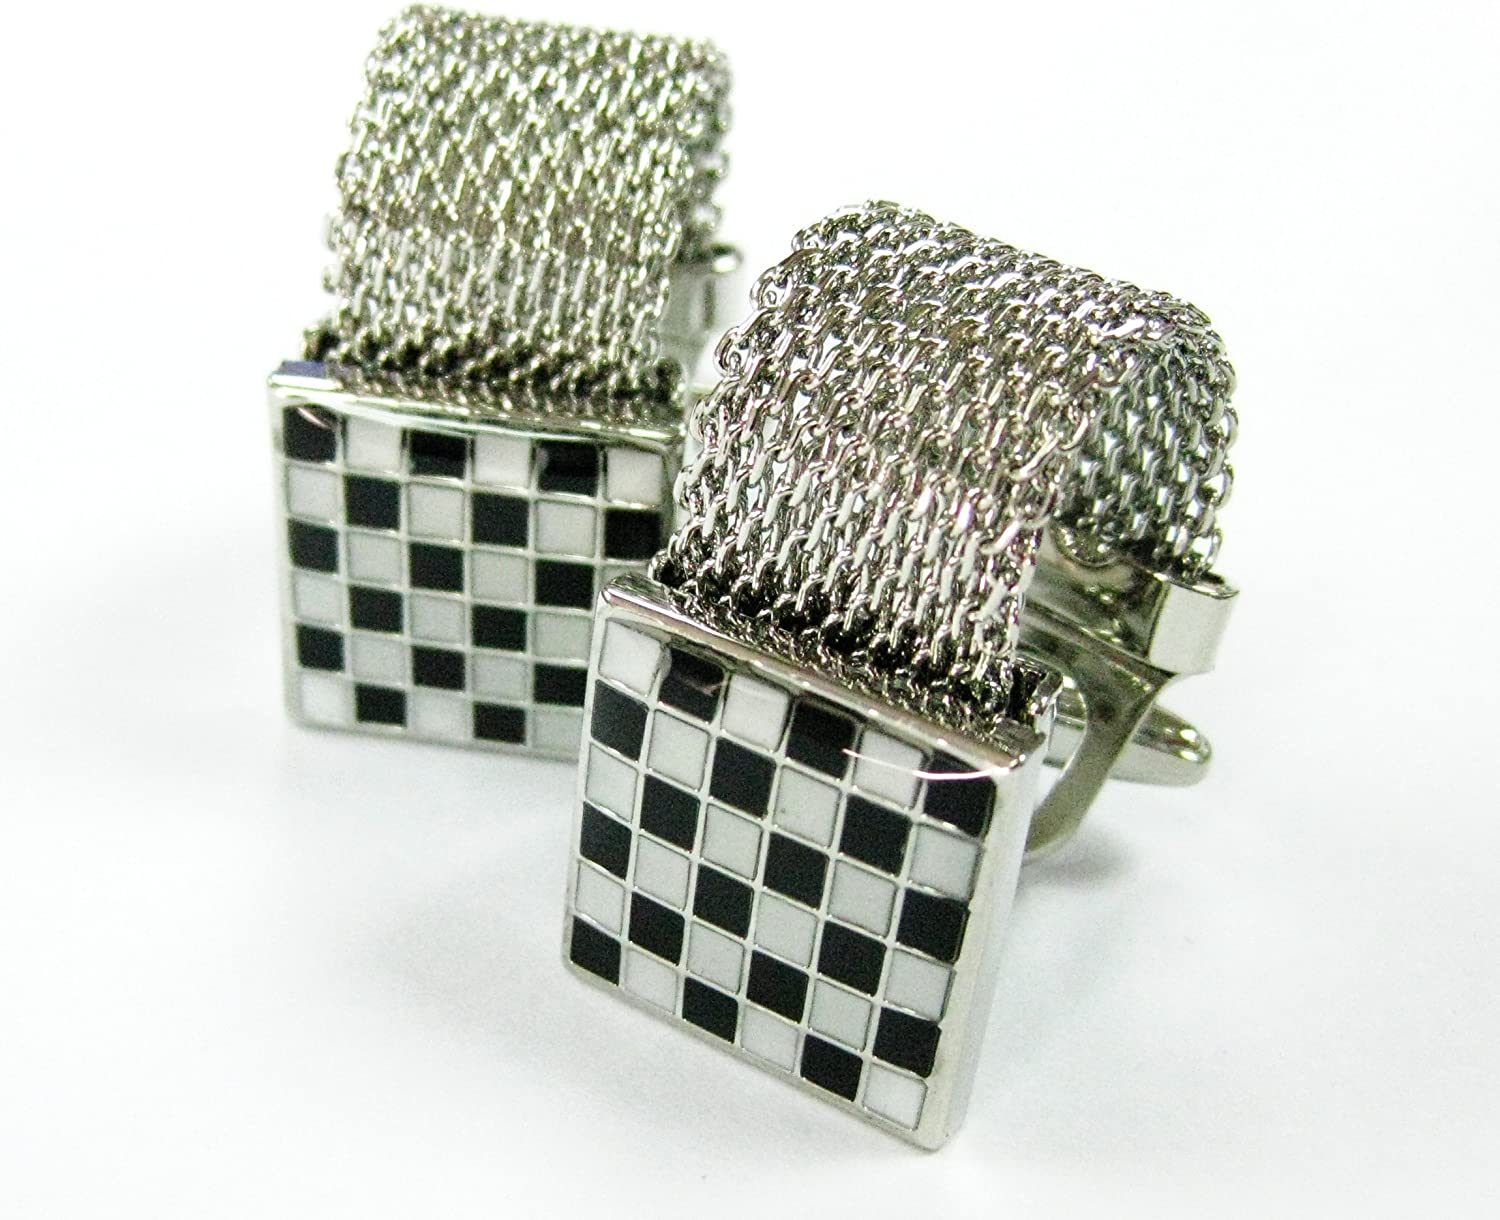 Tailor B Wrap Around Stainless Steel Chain Cufflinks Black and White Checkers Cuff Links